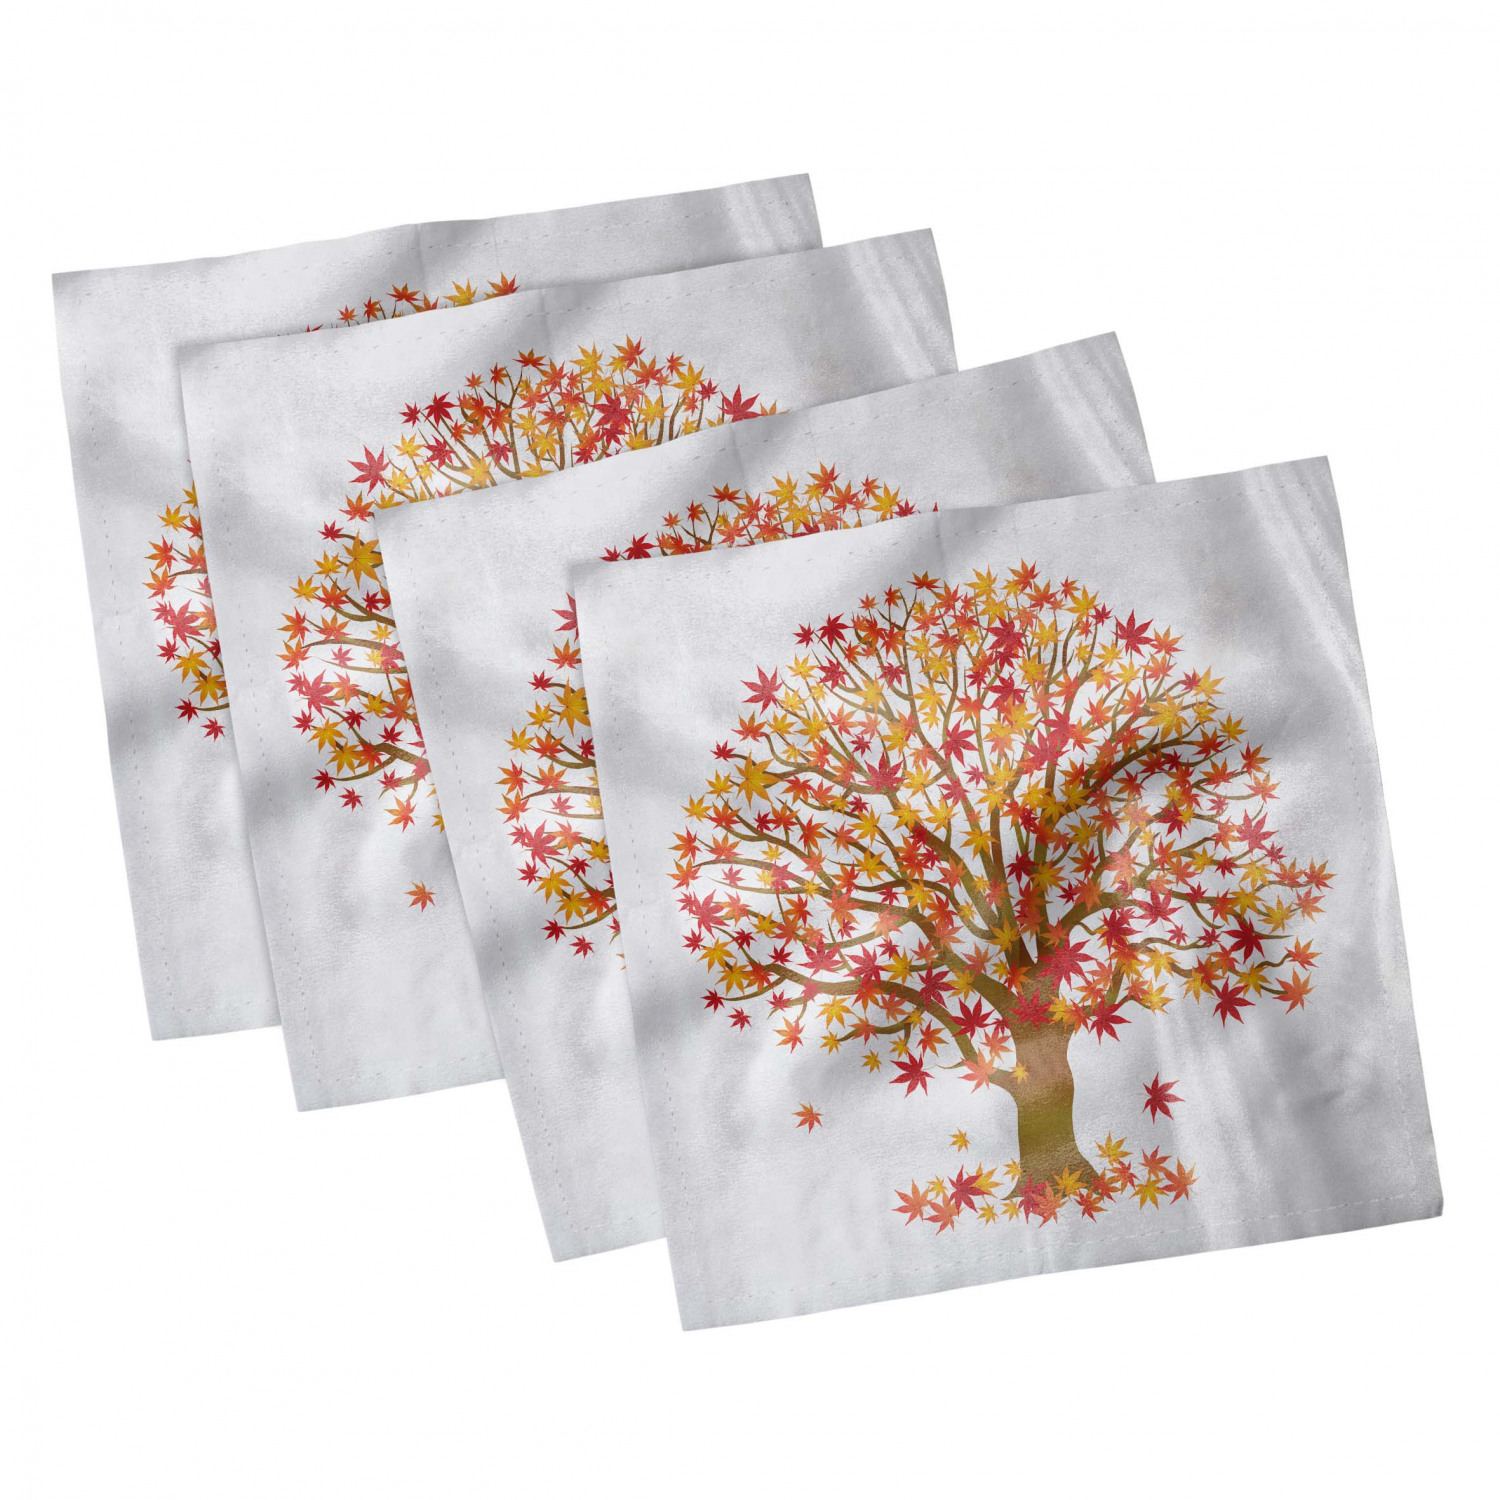 thumbnail 45 - Ambesonne-Autumn-Fall-Decorative-Satin-Napkins-Set-of-4-Party-Dinner-Fabric